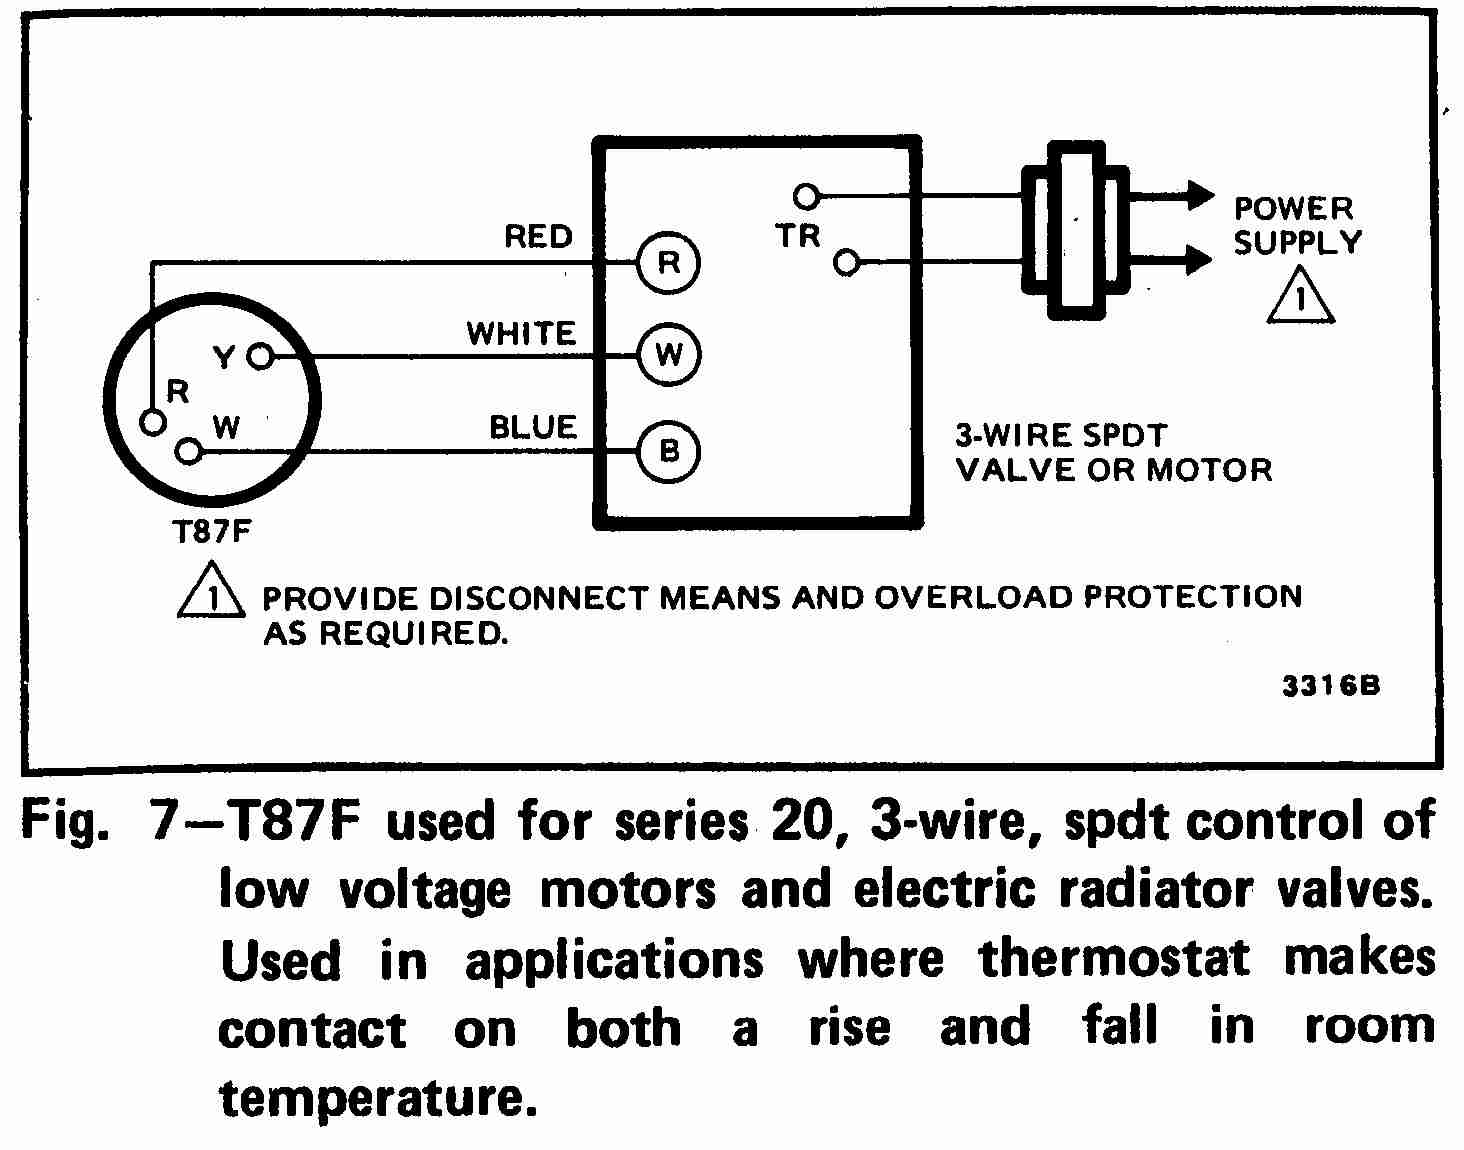 Room thermostat wiring diagrams for hvac systems 3 wire spdt honeywell t87f thermostat wiring diagram swarovskicordoba Images